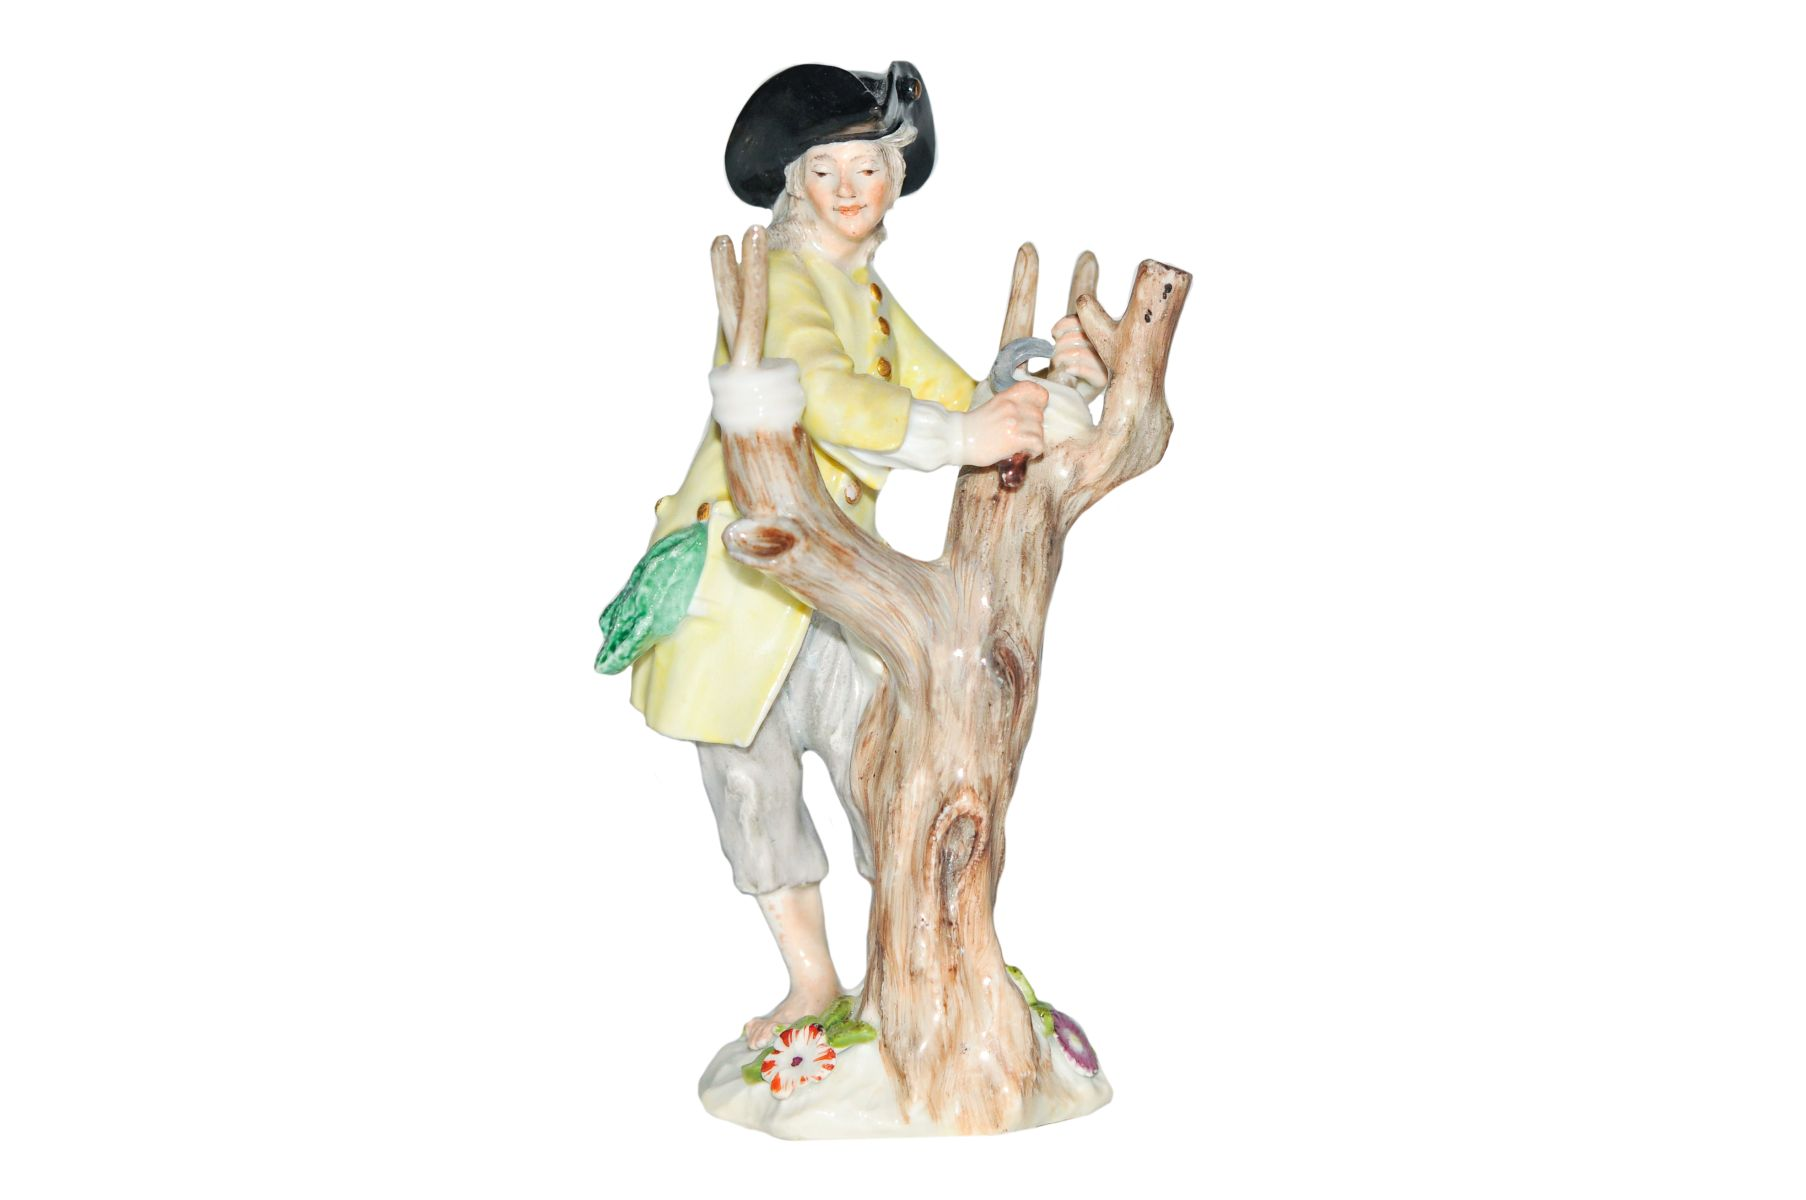 #142 Winegrower with vine tree, Meissen 1750 | Weinbauer mit Weinstock, Meissen 1750 Image